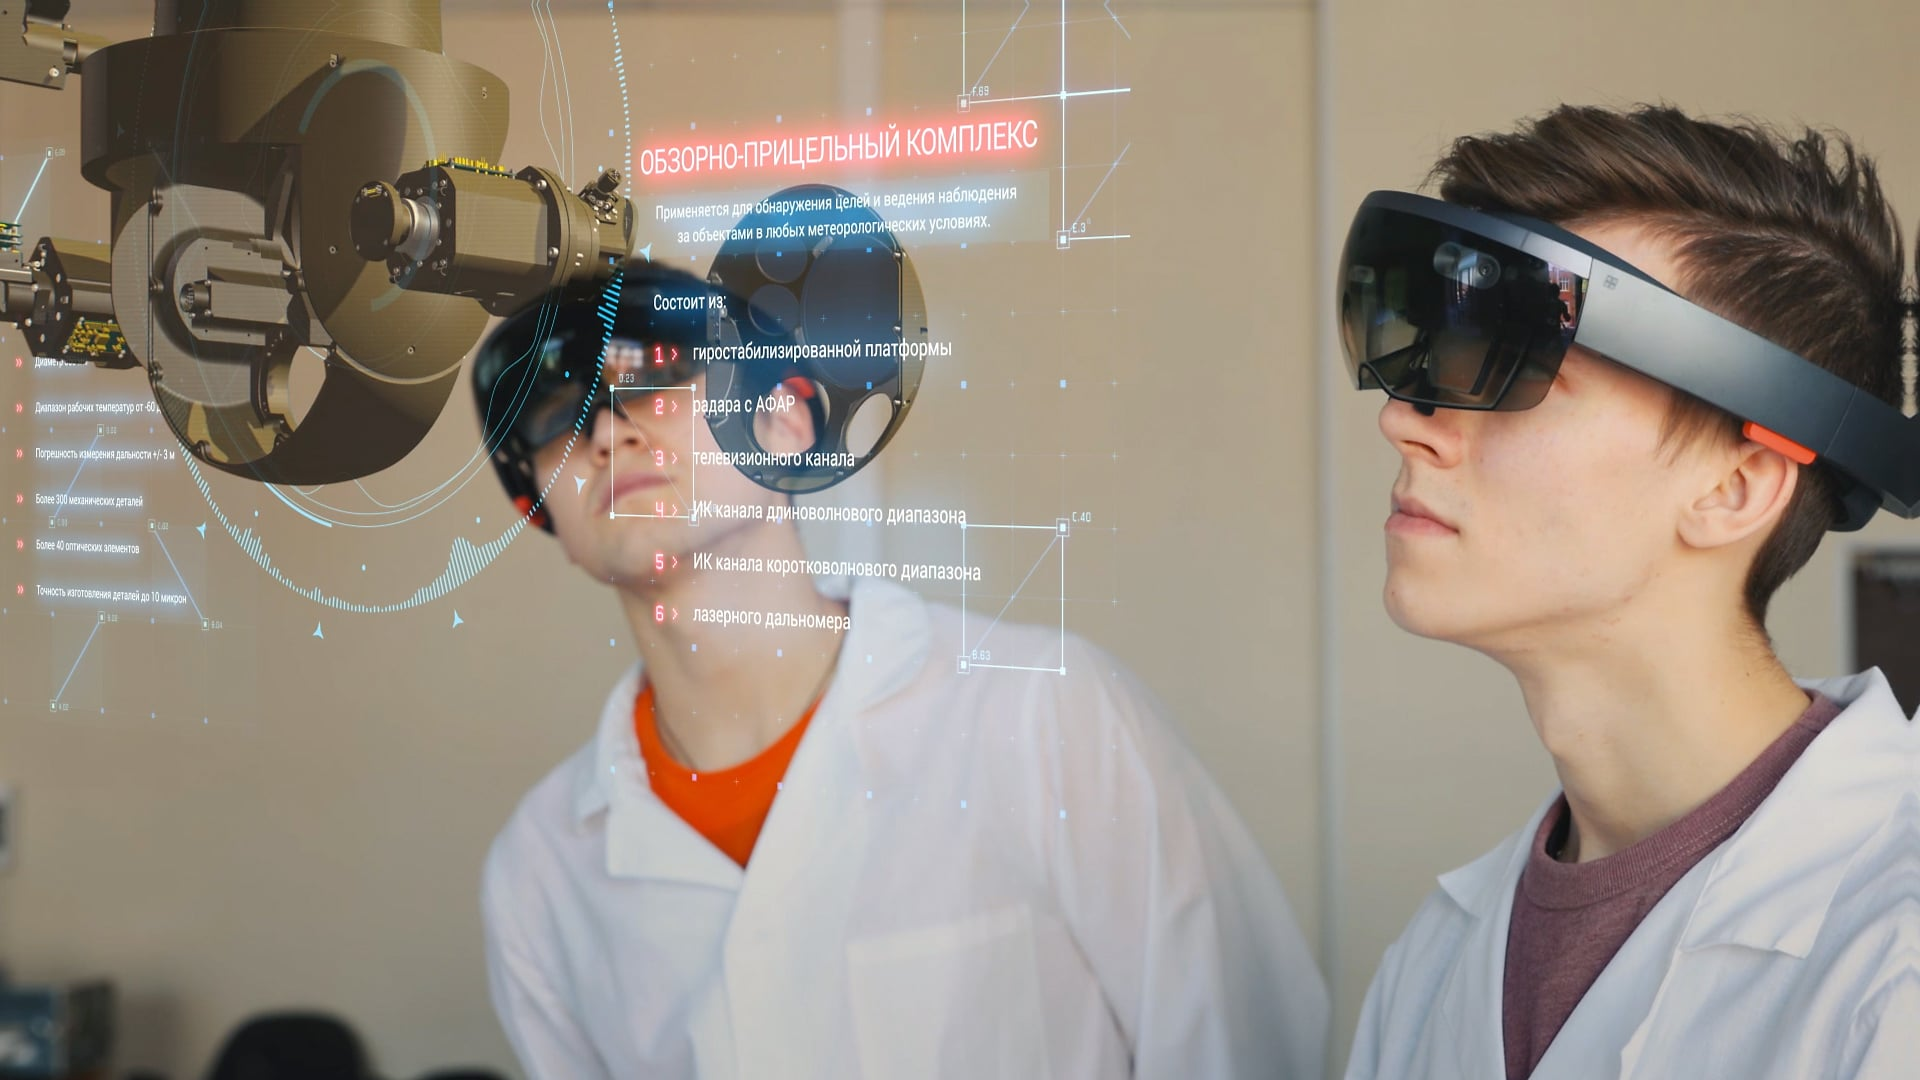 HoloLens AR glasses allow multiple users to see the same holographic image.